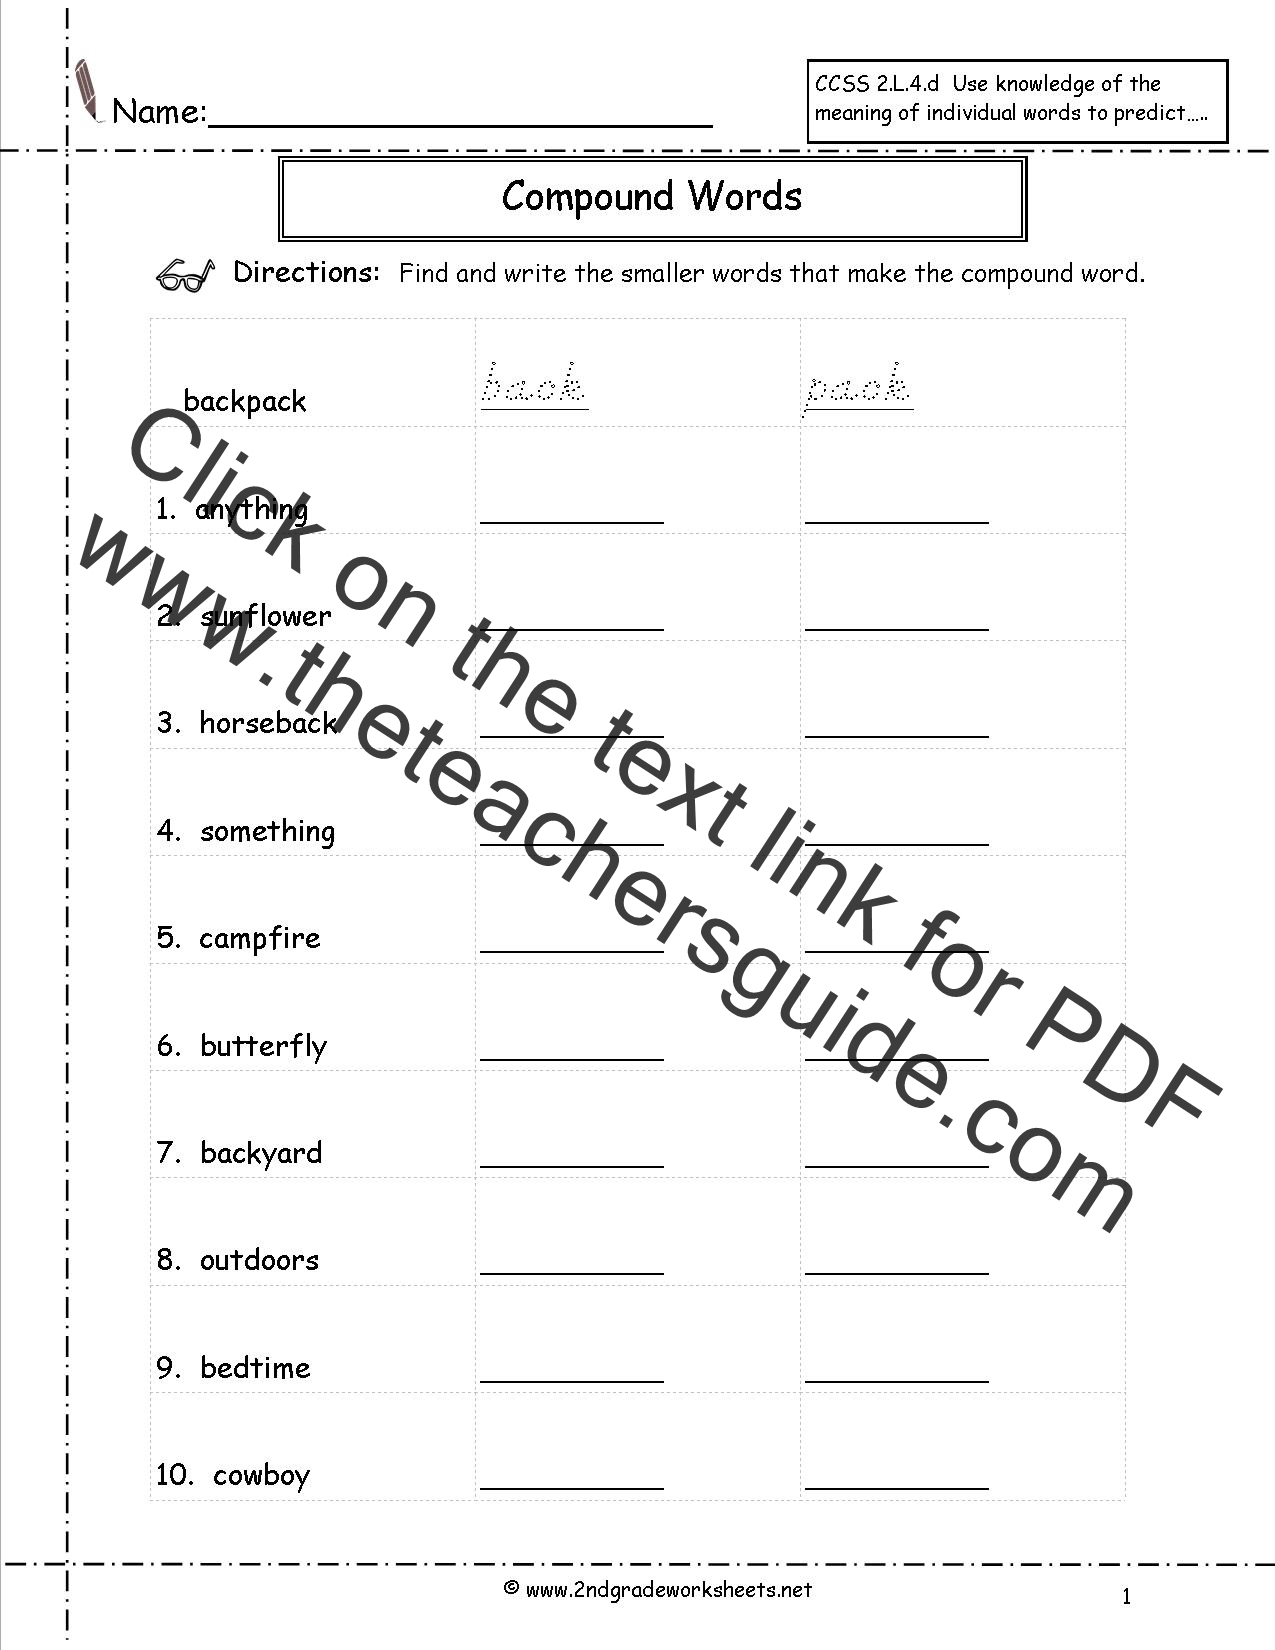 worksheet Elementary Grammar Worksheets free languagegrammar worksheets and printouts compound words worksheets